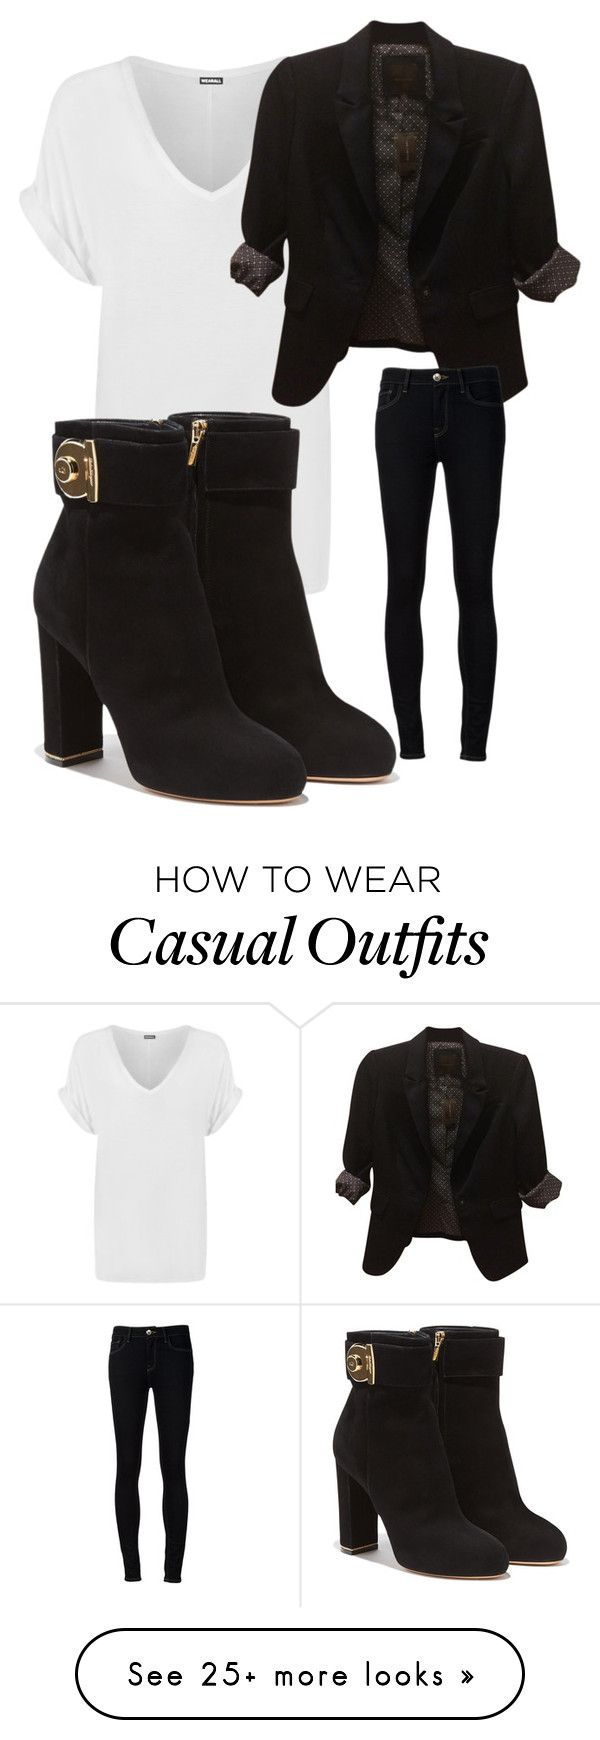 """""""Casual yet put together"""" by leeleeshantay on Polyvore featuring WearAll, The Limited, Ström and Salvatore Ferragamo"""